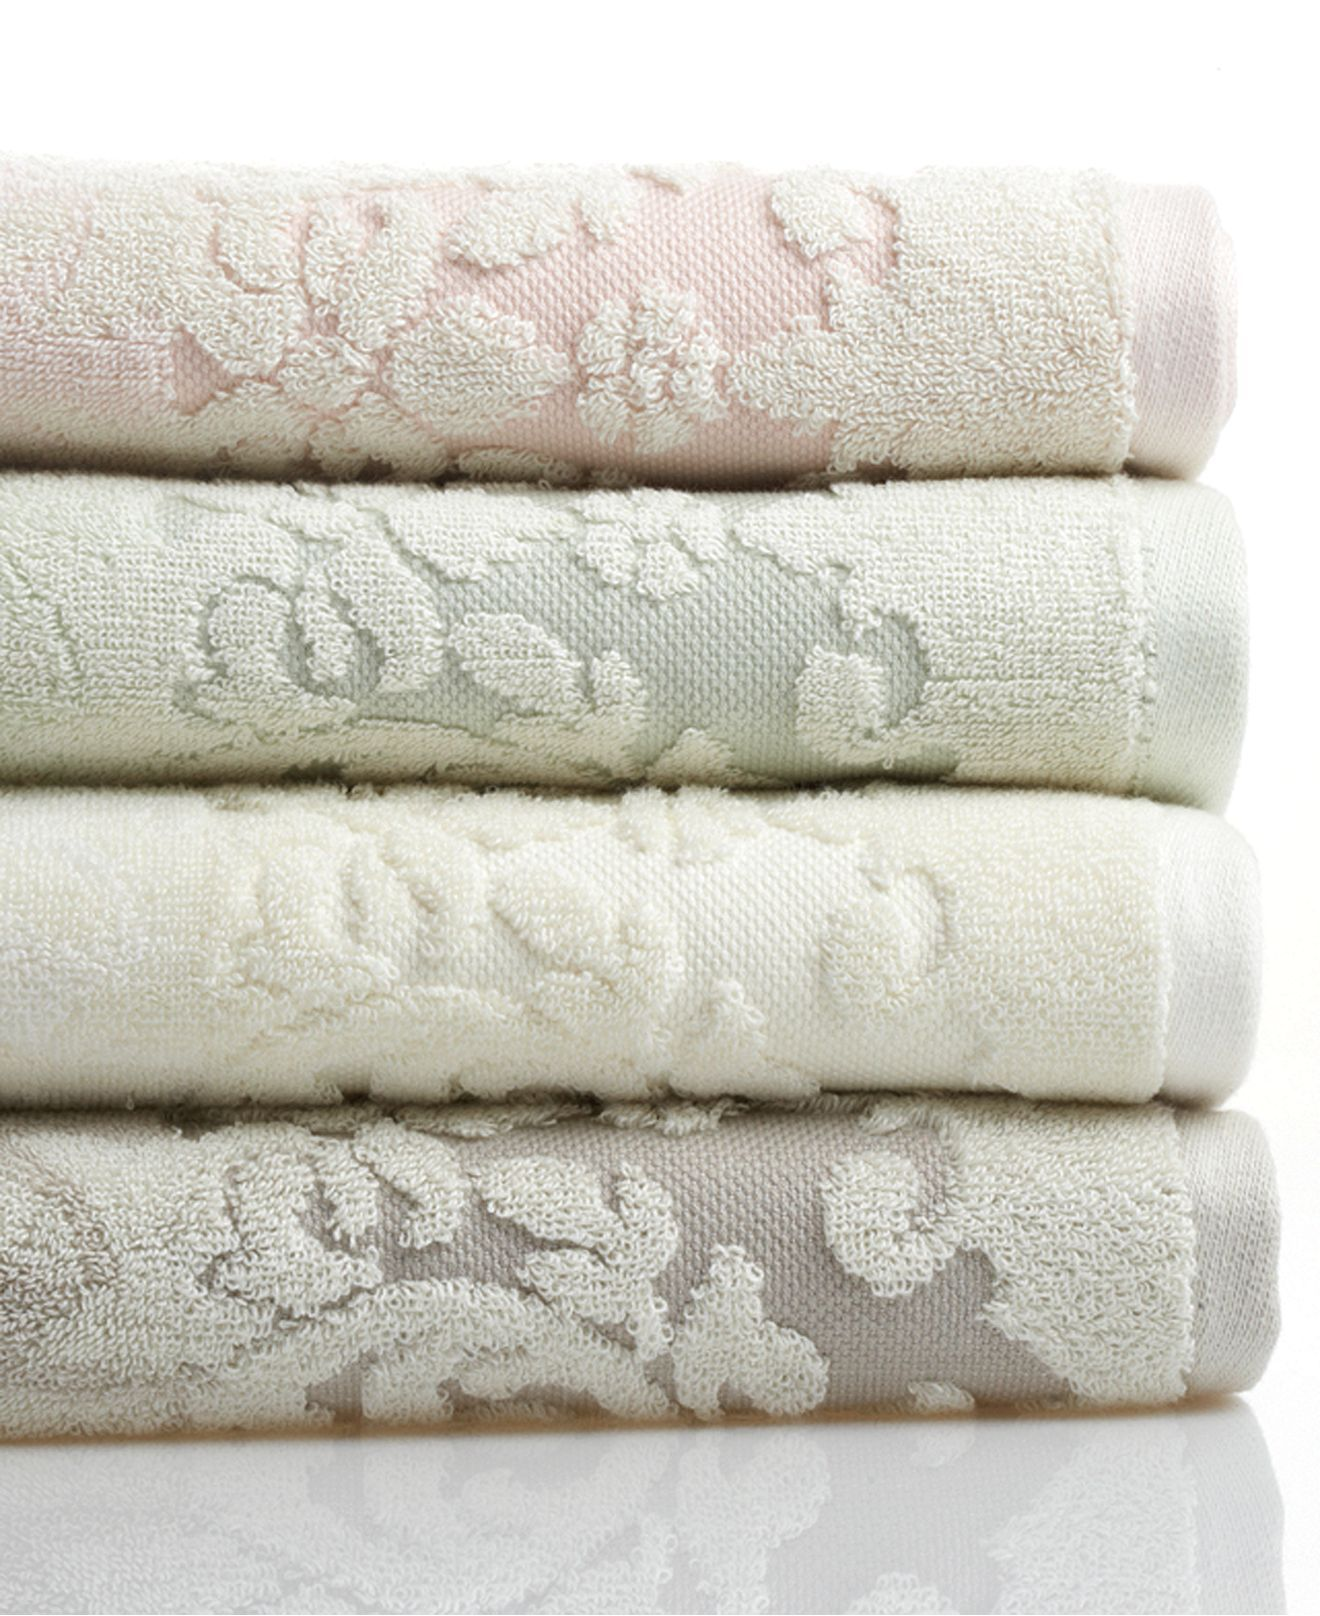 Macys Bath Towels Enchanting Martha Stewart Collection Bath Towels Imperial Damask Collection Inspiration Design